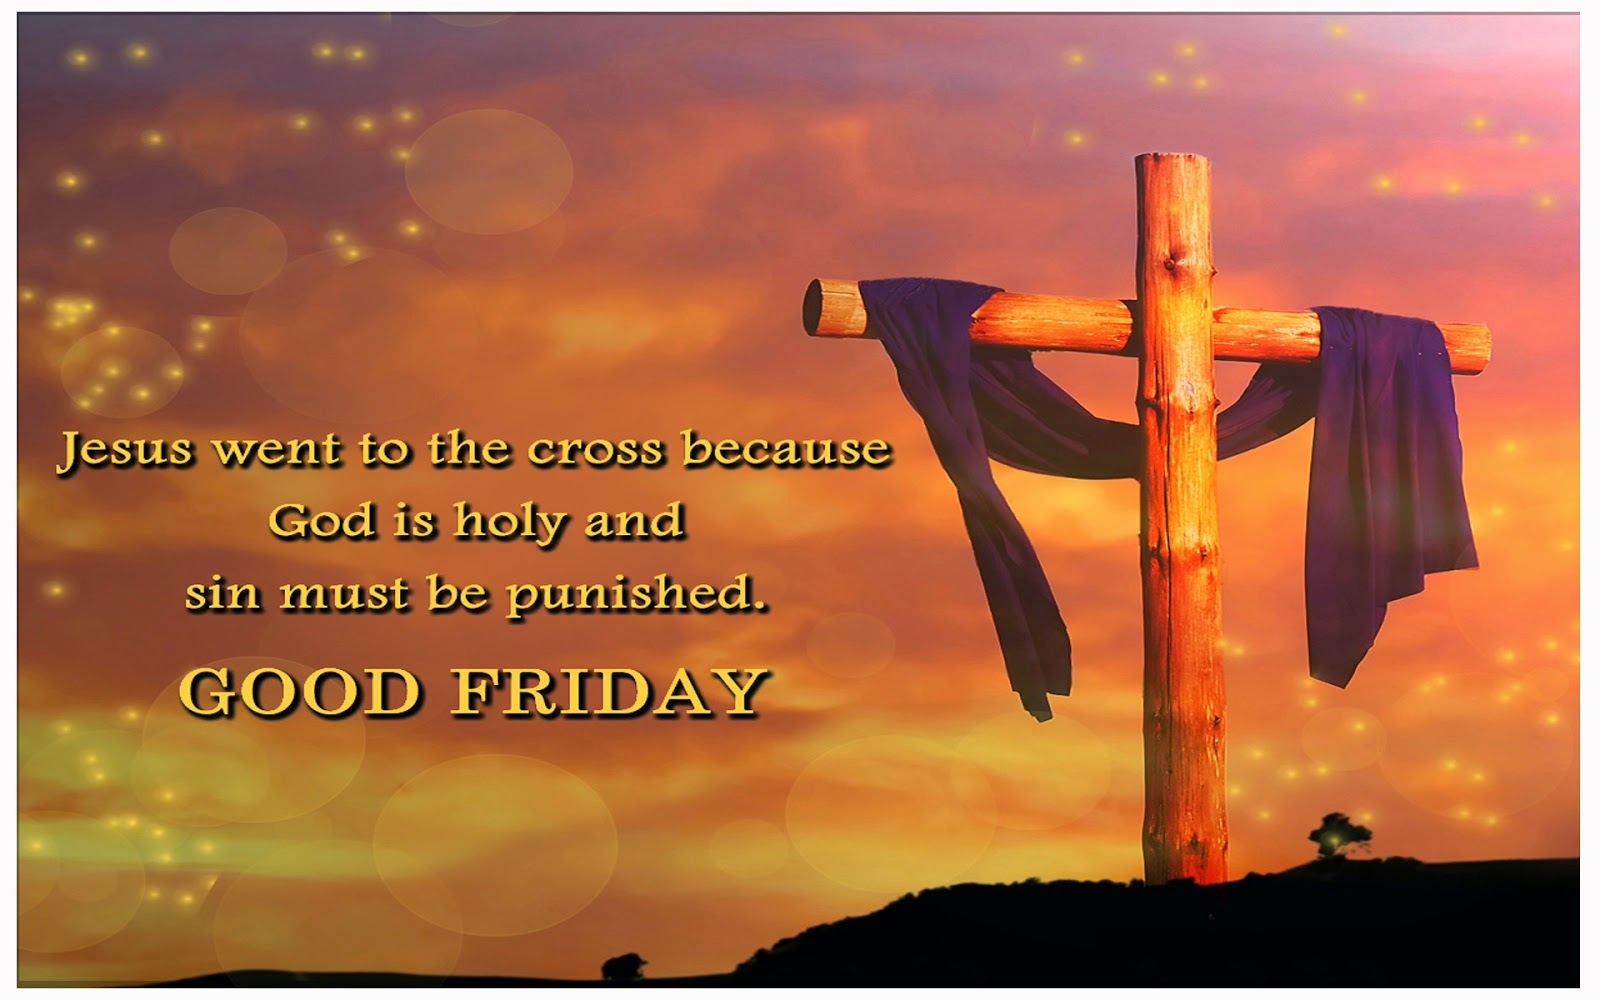 Good Friday Picture Quotes: GOOD FRIDAY QUOTES IMAGES BIBLE VERSES FACEBOOK PICTURES